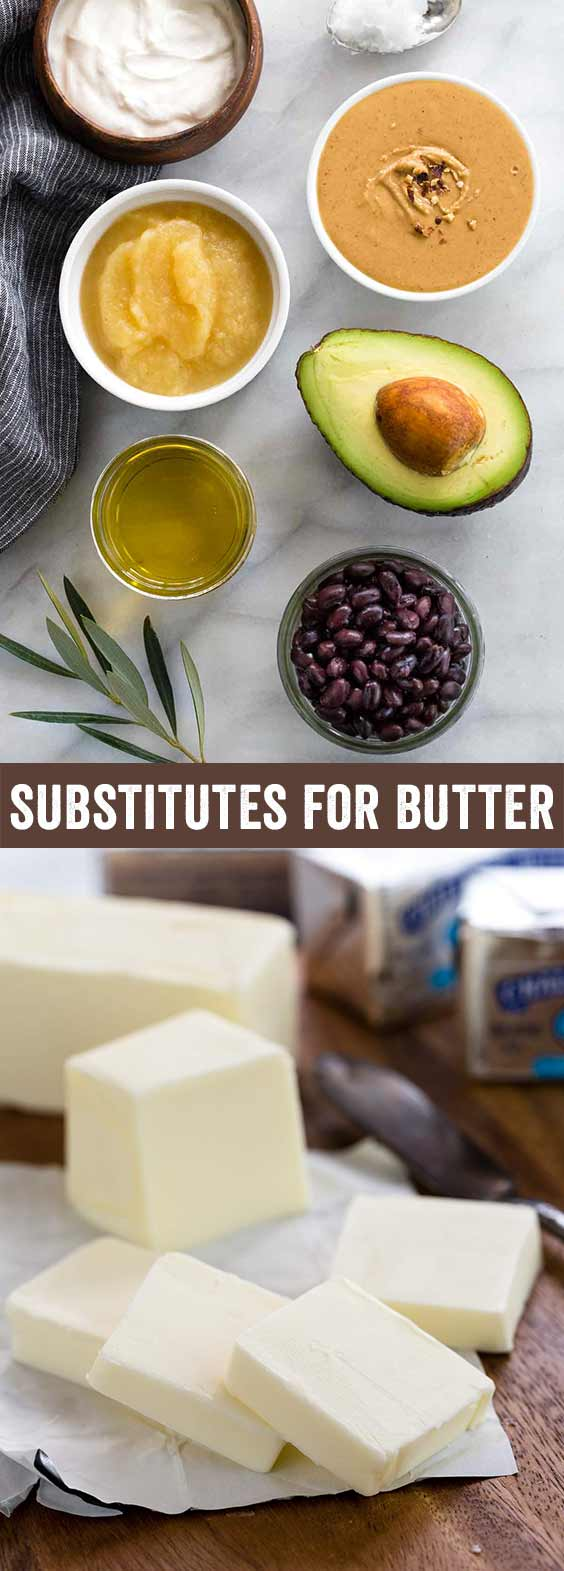 Healthy substitutes for butter in baking that can be easily incorporated into recipes. It may be surprising to see beans, avocado, and applesauce as replacements, but they work! This guide provides 8 alternative butter options and how to use them.